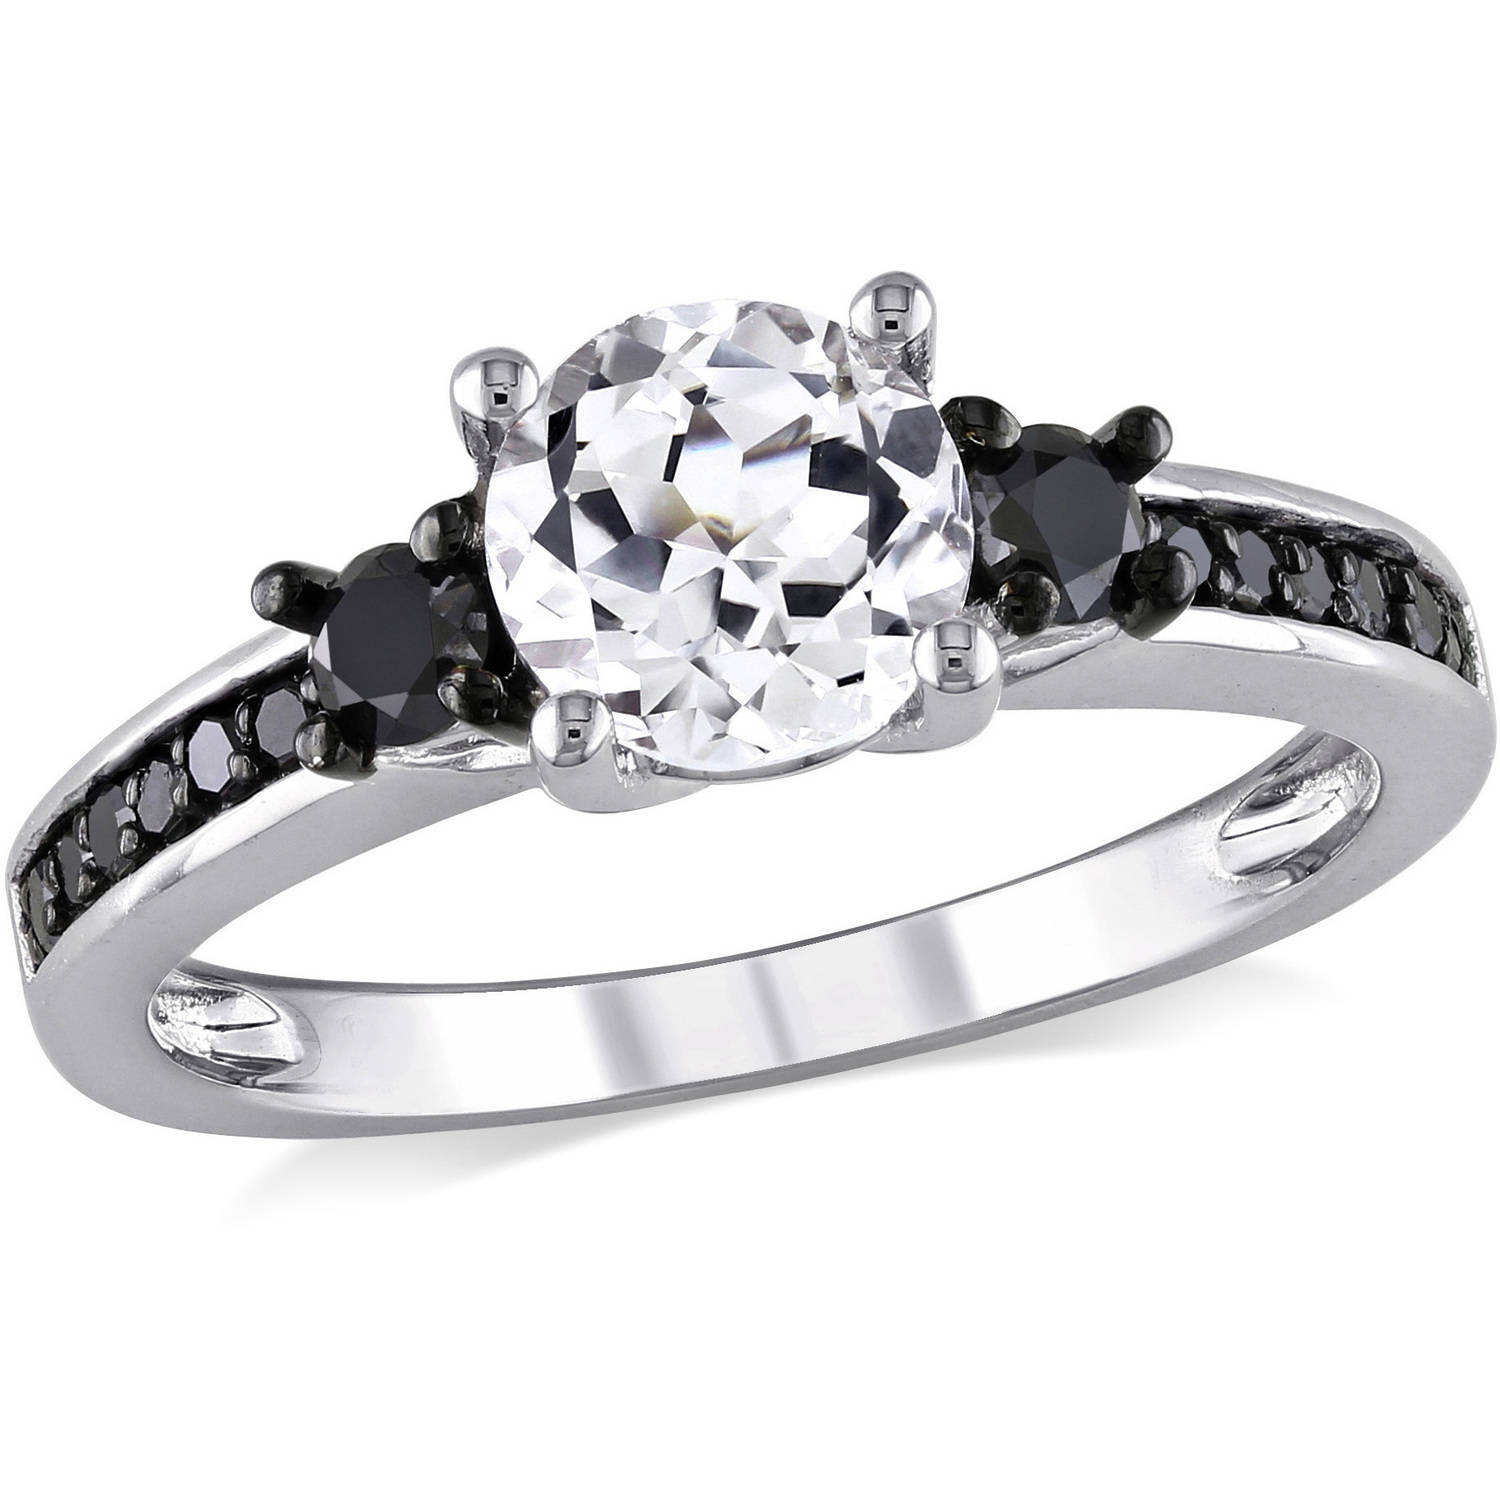 Asteria 1-3/8 Carat T.G.W. Created White Sapphire and 1/3 Carat T.W. Black Diamond Sterling Silver Three-Stone Engagement Ring